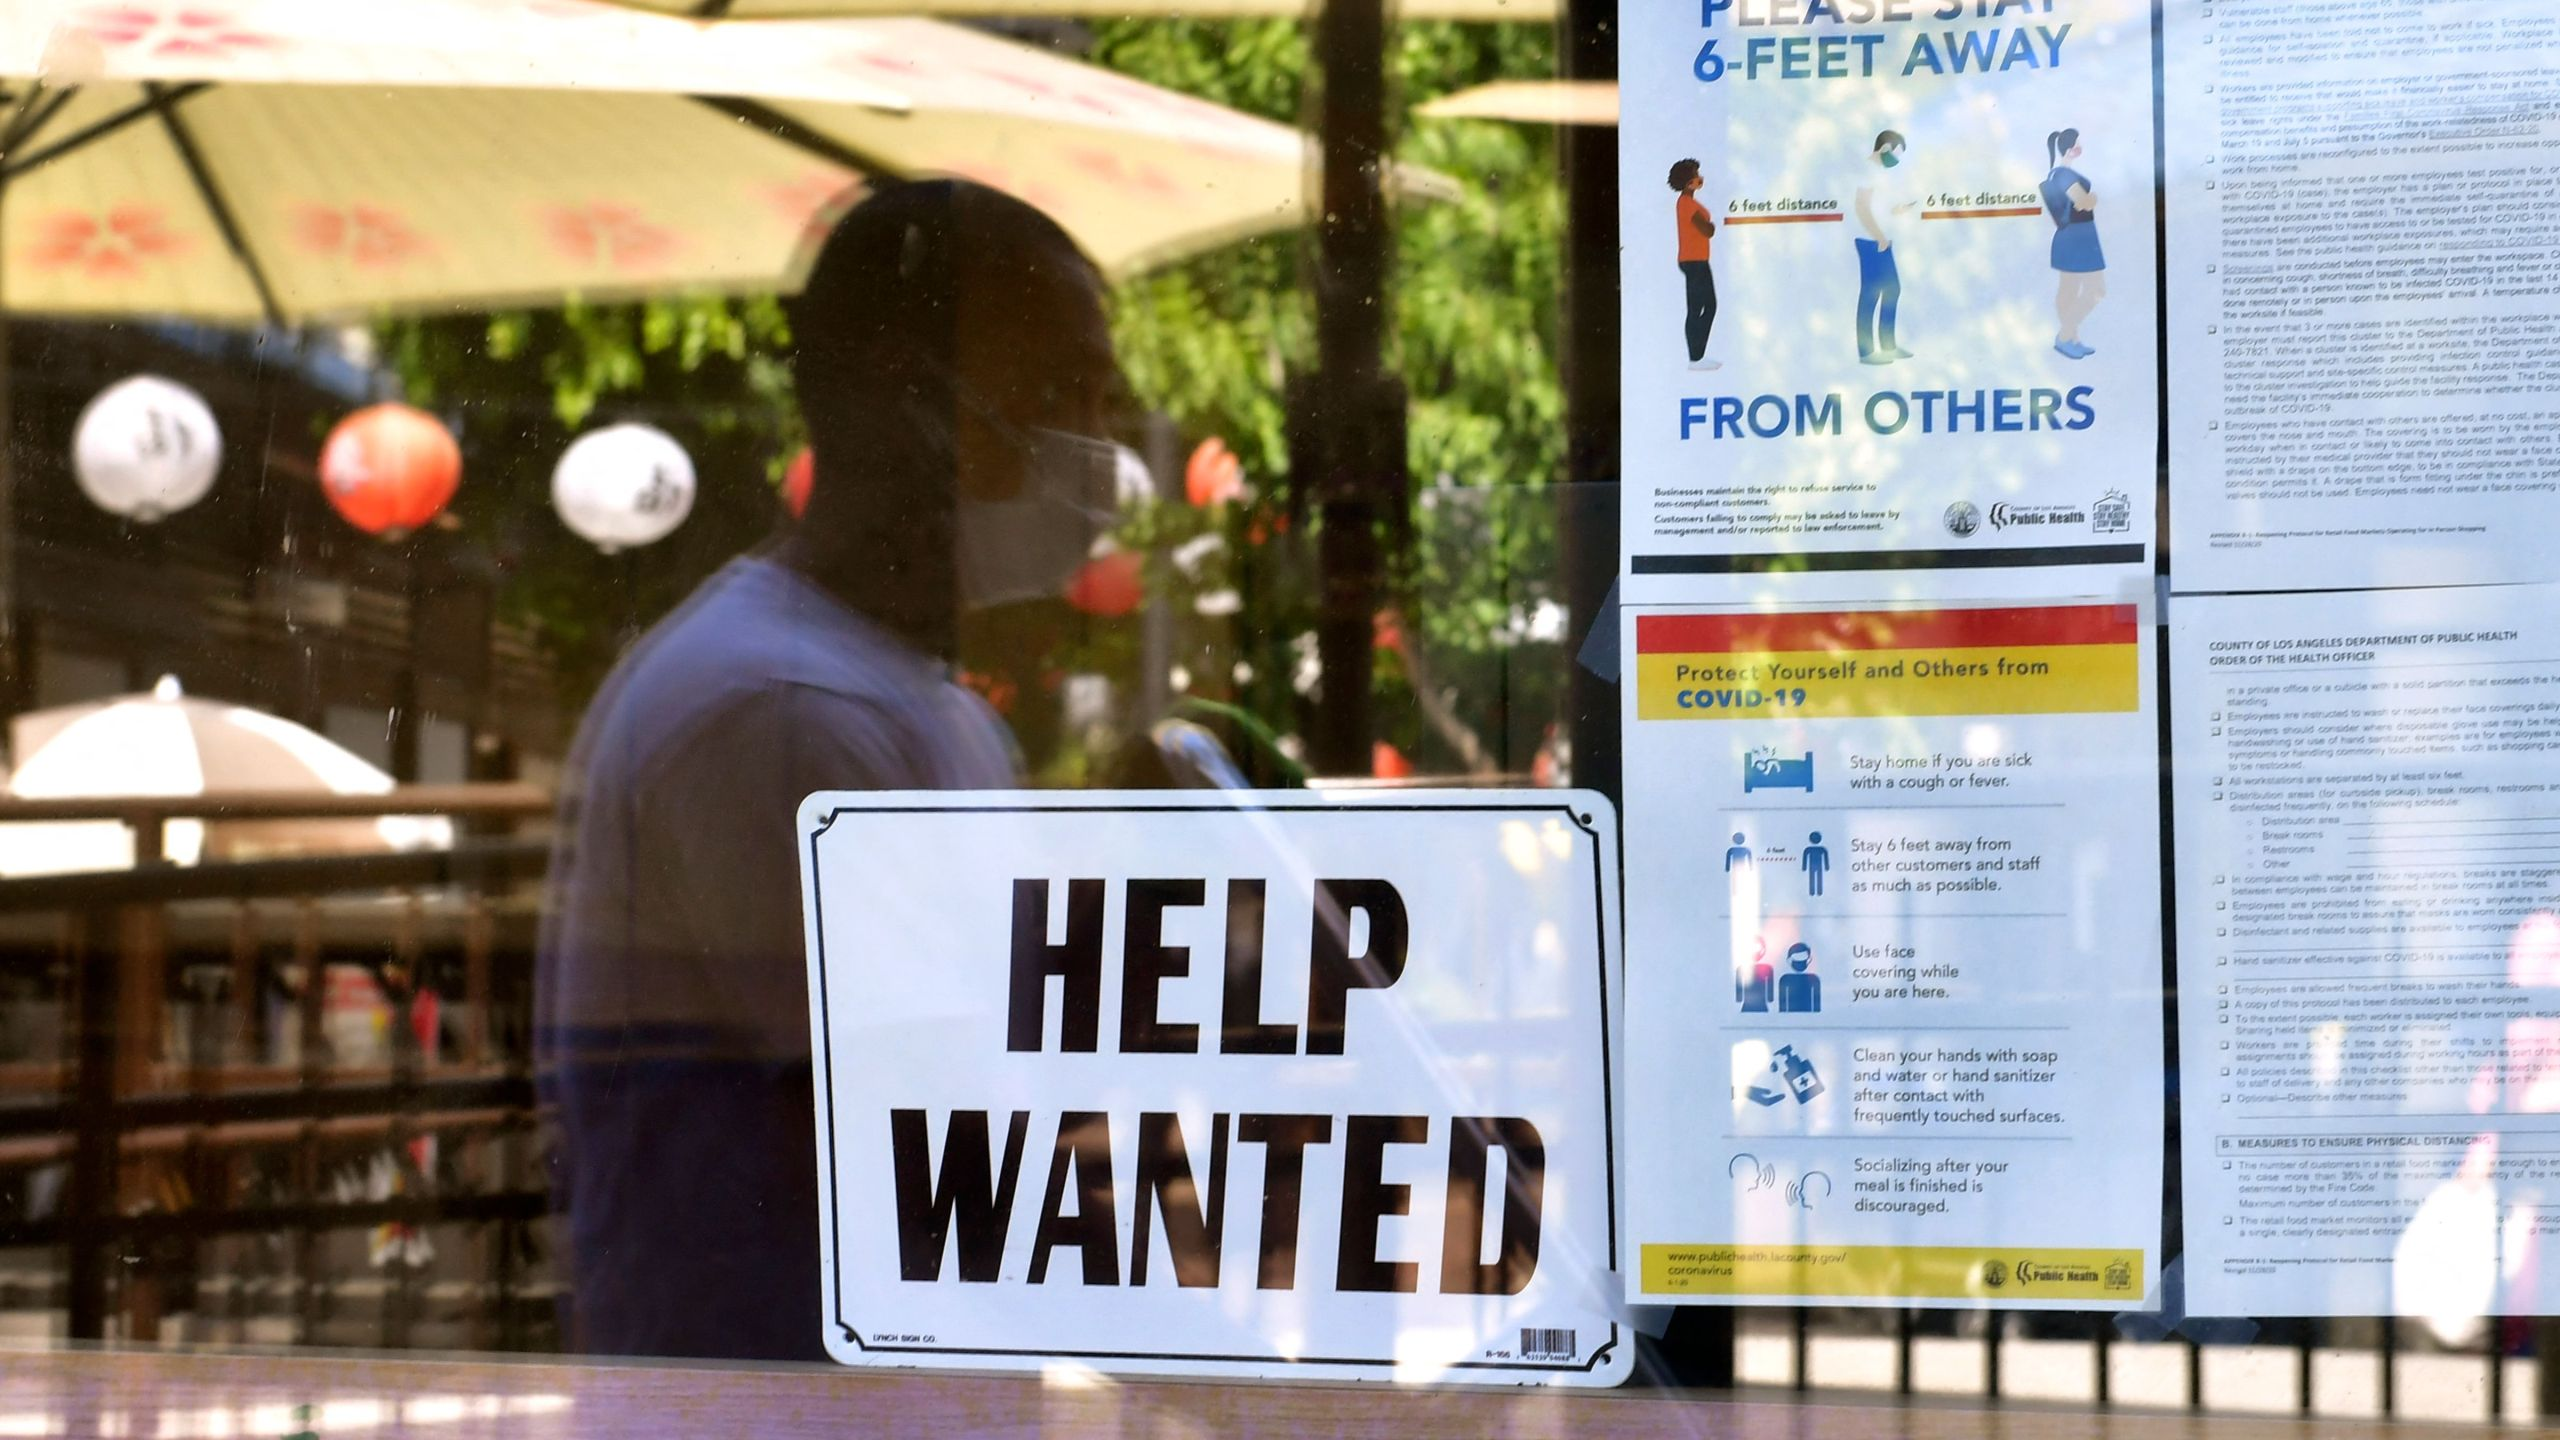 """A """"Help Wanted"""" sign is posted beside coronavirus safety guidelines in front of a restaurant in Los Angeles, California on May 28, 2021. (FREDERIC J. BROWN/AFP via Getty Images)"""